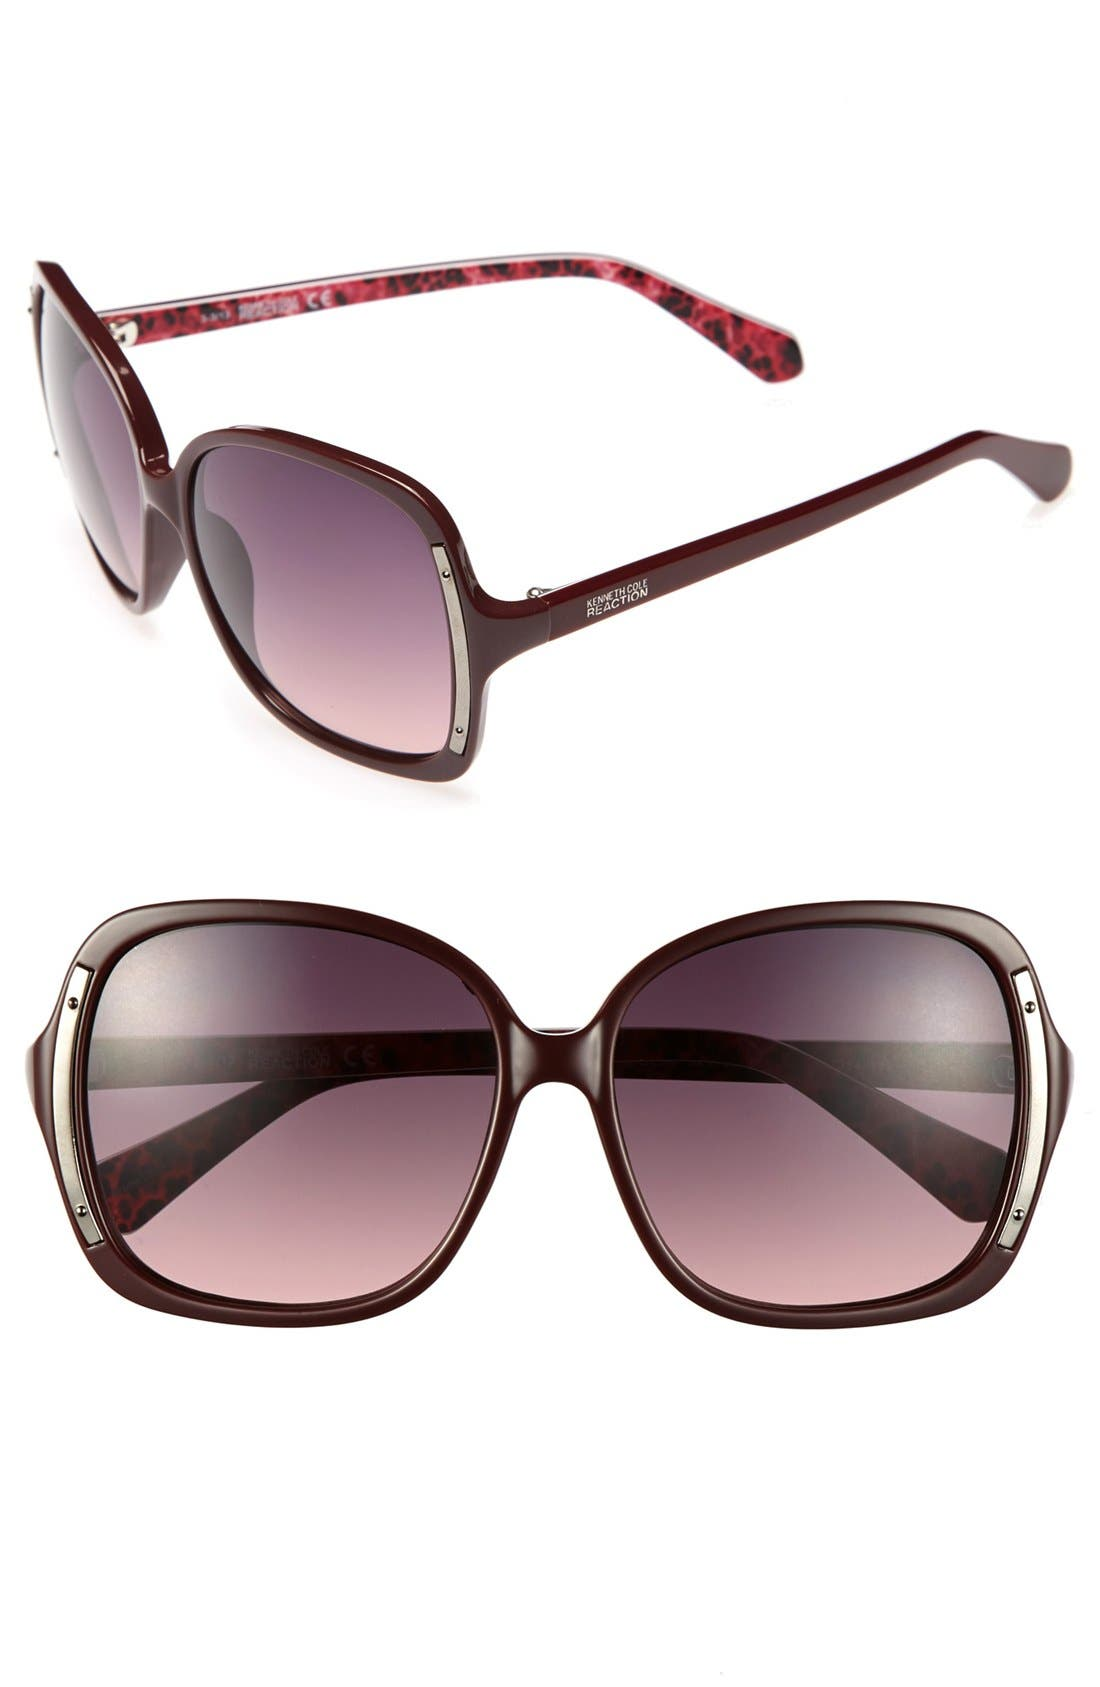 Main Image - Kenneth Cole Reaction 60mm Sunglasses